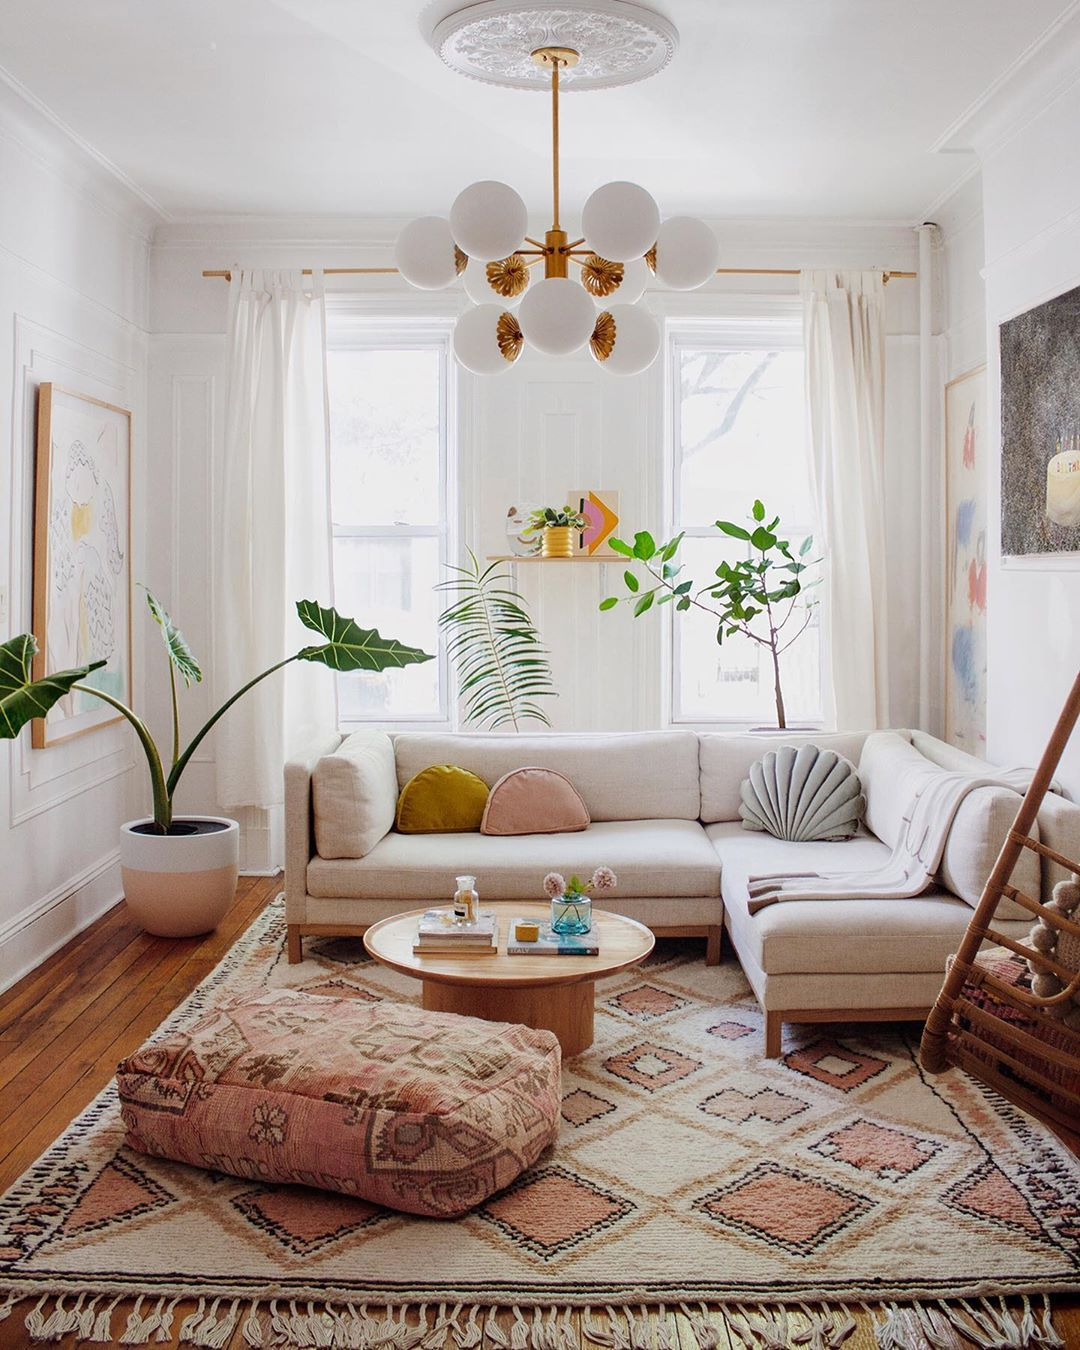 Behold 6 Sunset Inspired Ideas To Make Summer Feel Truly Endless In A Good Way Hunke Bohemian Living Room Decor Living Room Decor Neutral Boho Living Room #neutral #bohemian #living #room